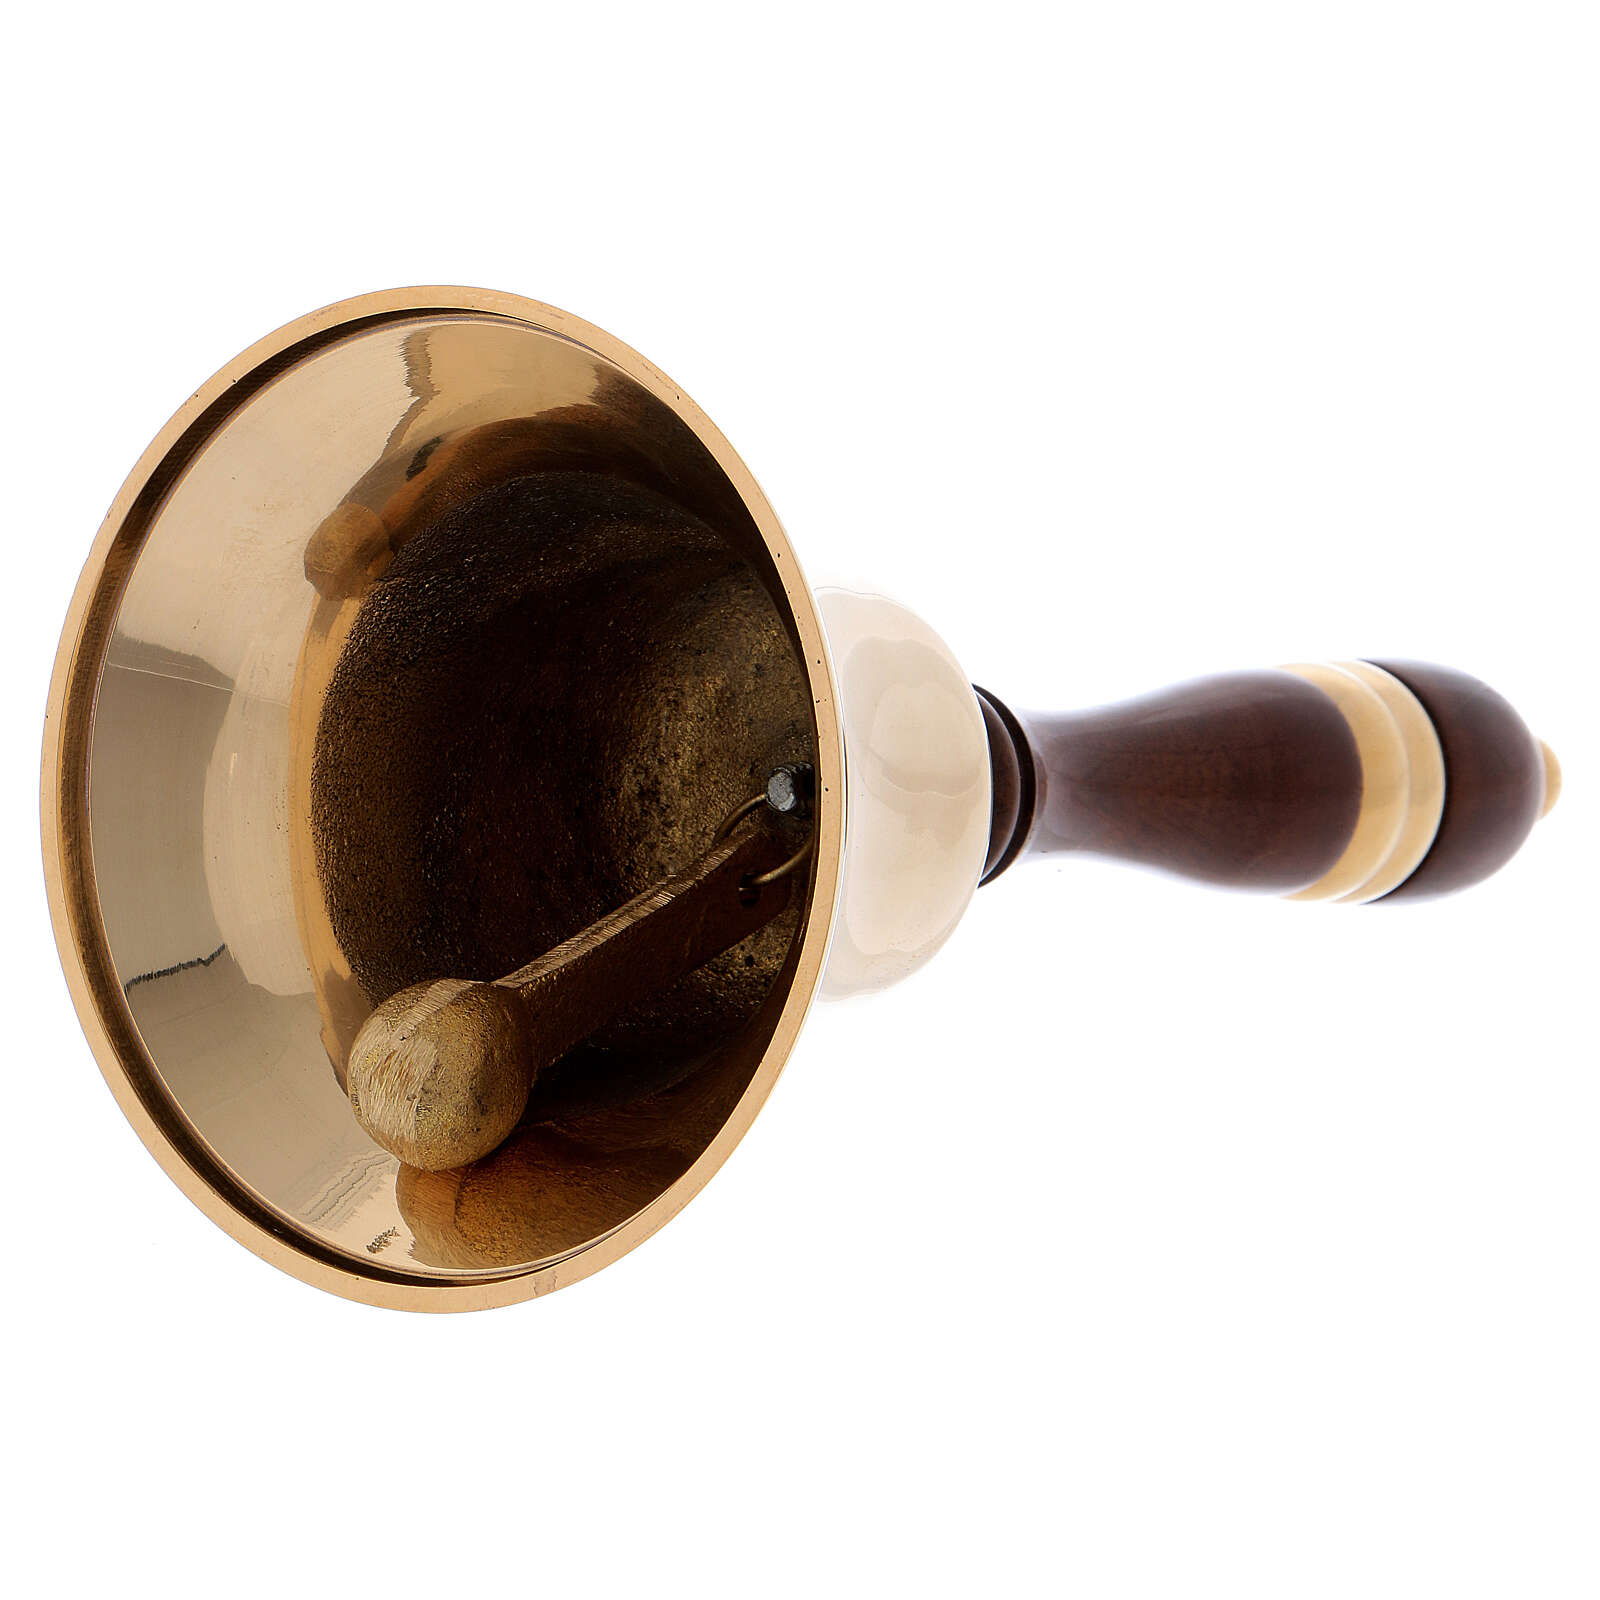 Liturgical bell in gold plated brass with wood handle 8 3/4 in 3